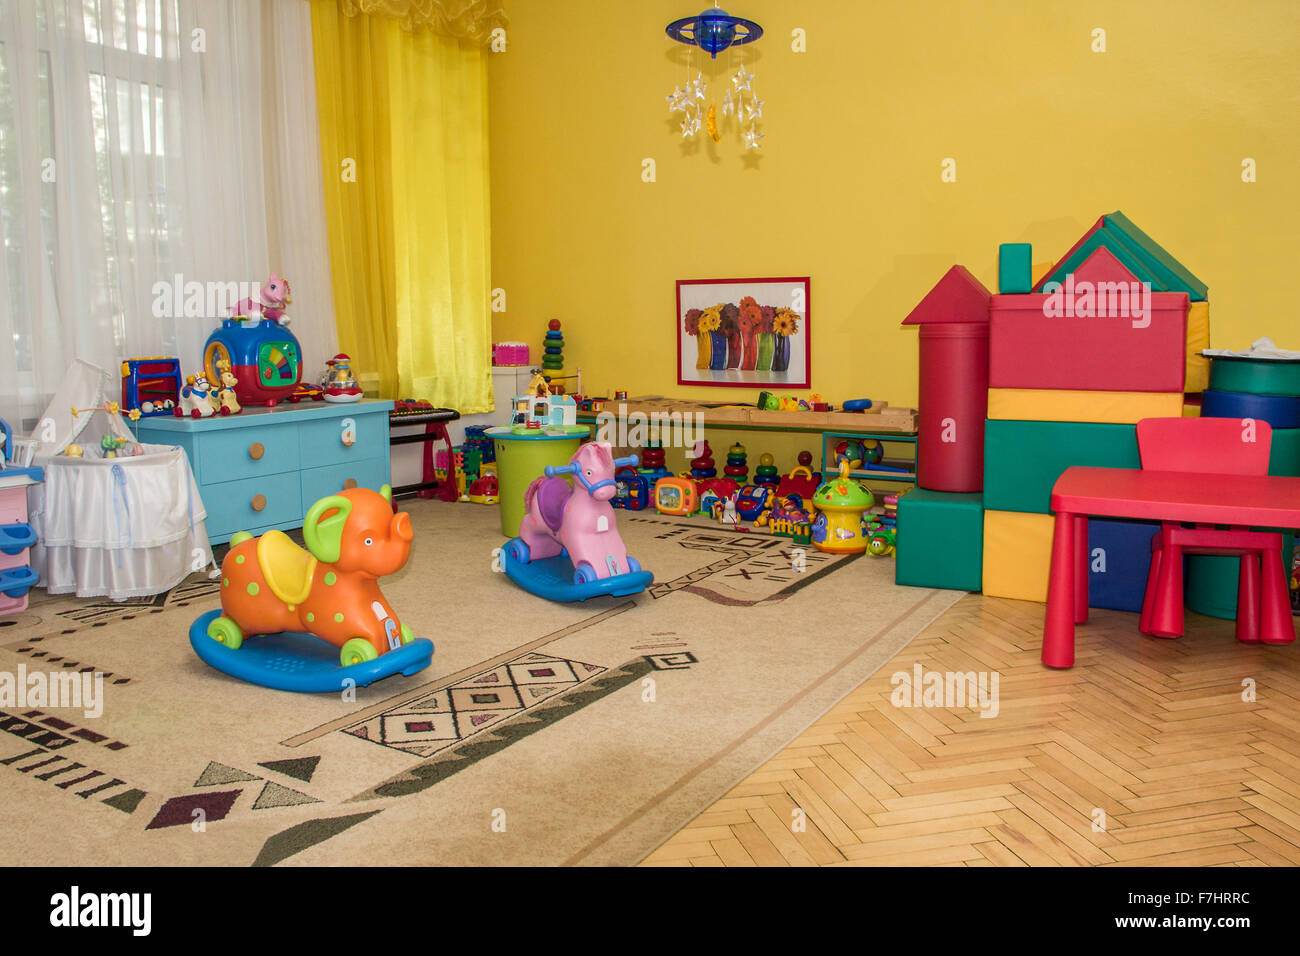 play area with lots of toys in kindergarden stock image - Kinder Garden